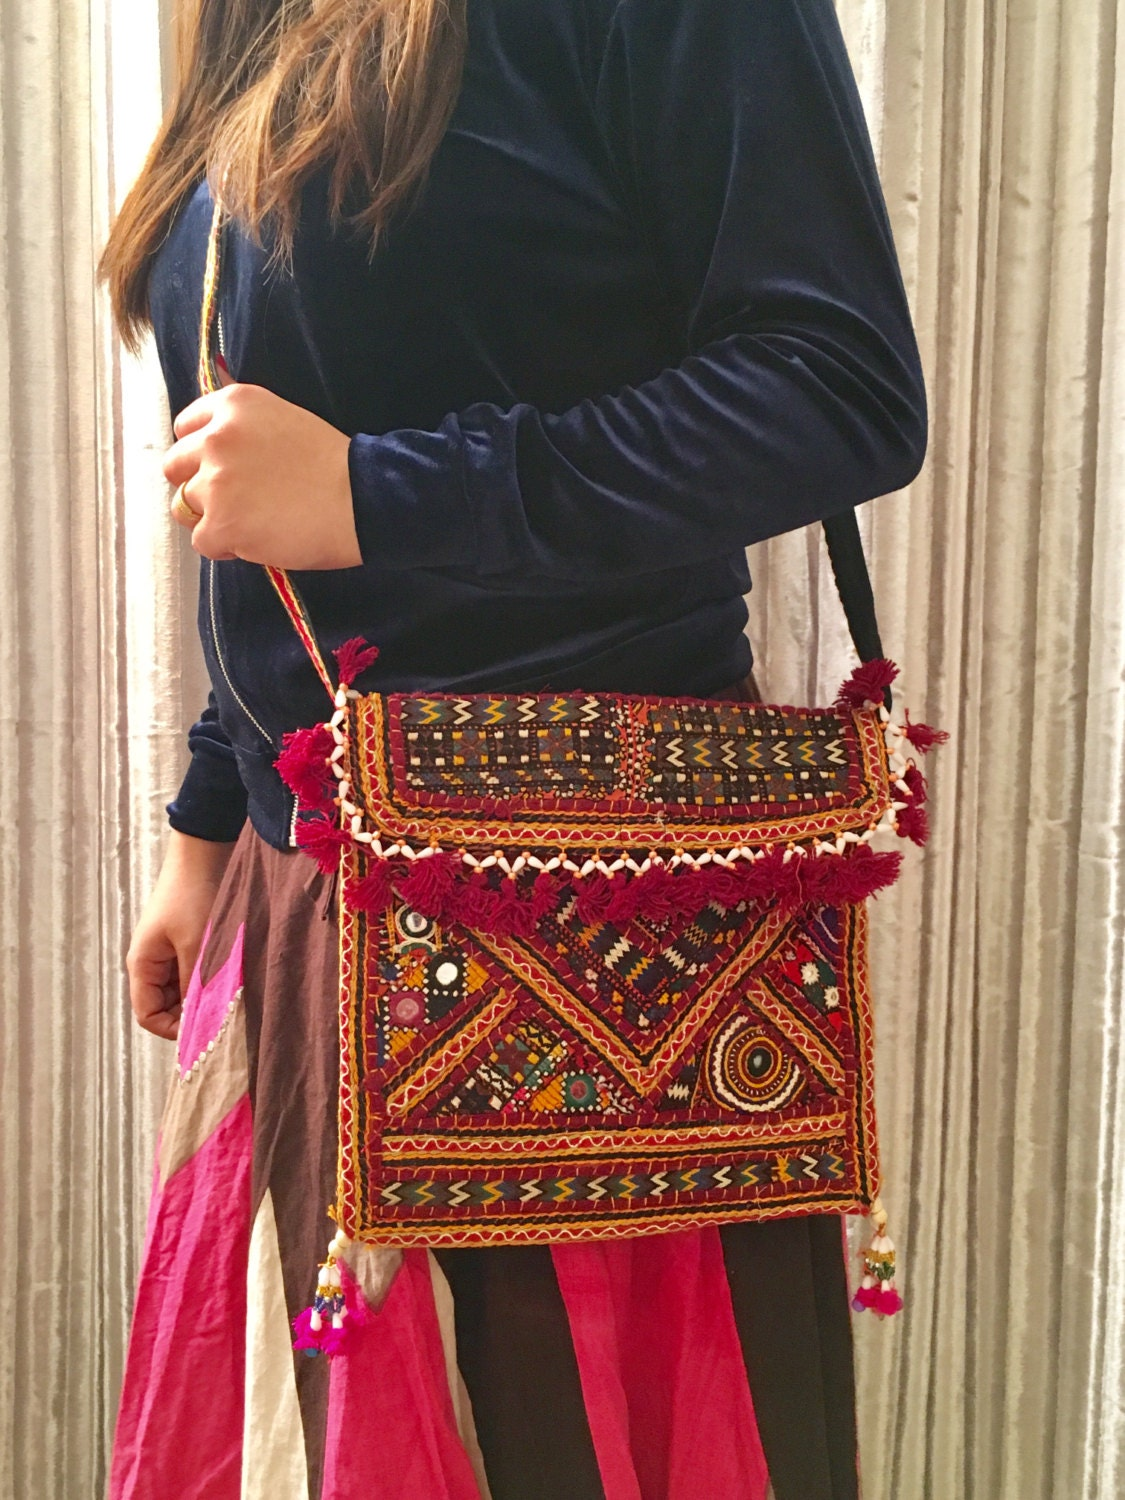 Shoulder Bag Boho bag Hippie Bag Vintage Purse Party Purse Luxe Purse Sling bag Mirror work Tribal bag Gift Idea Antique Bag